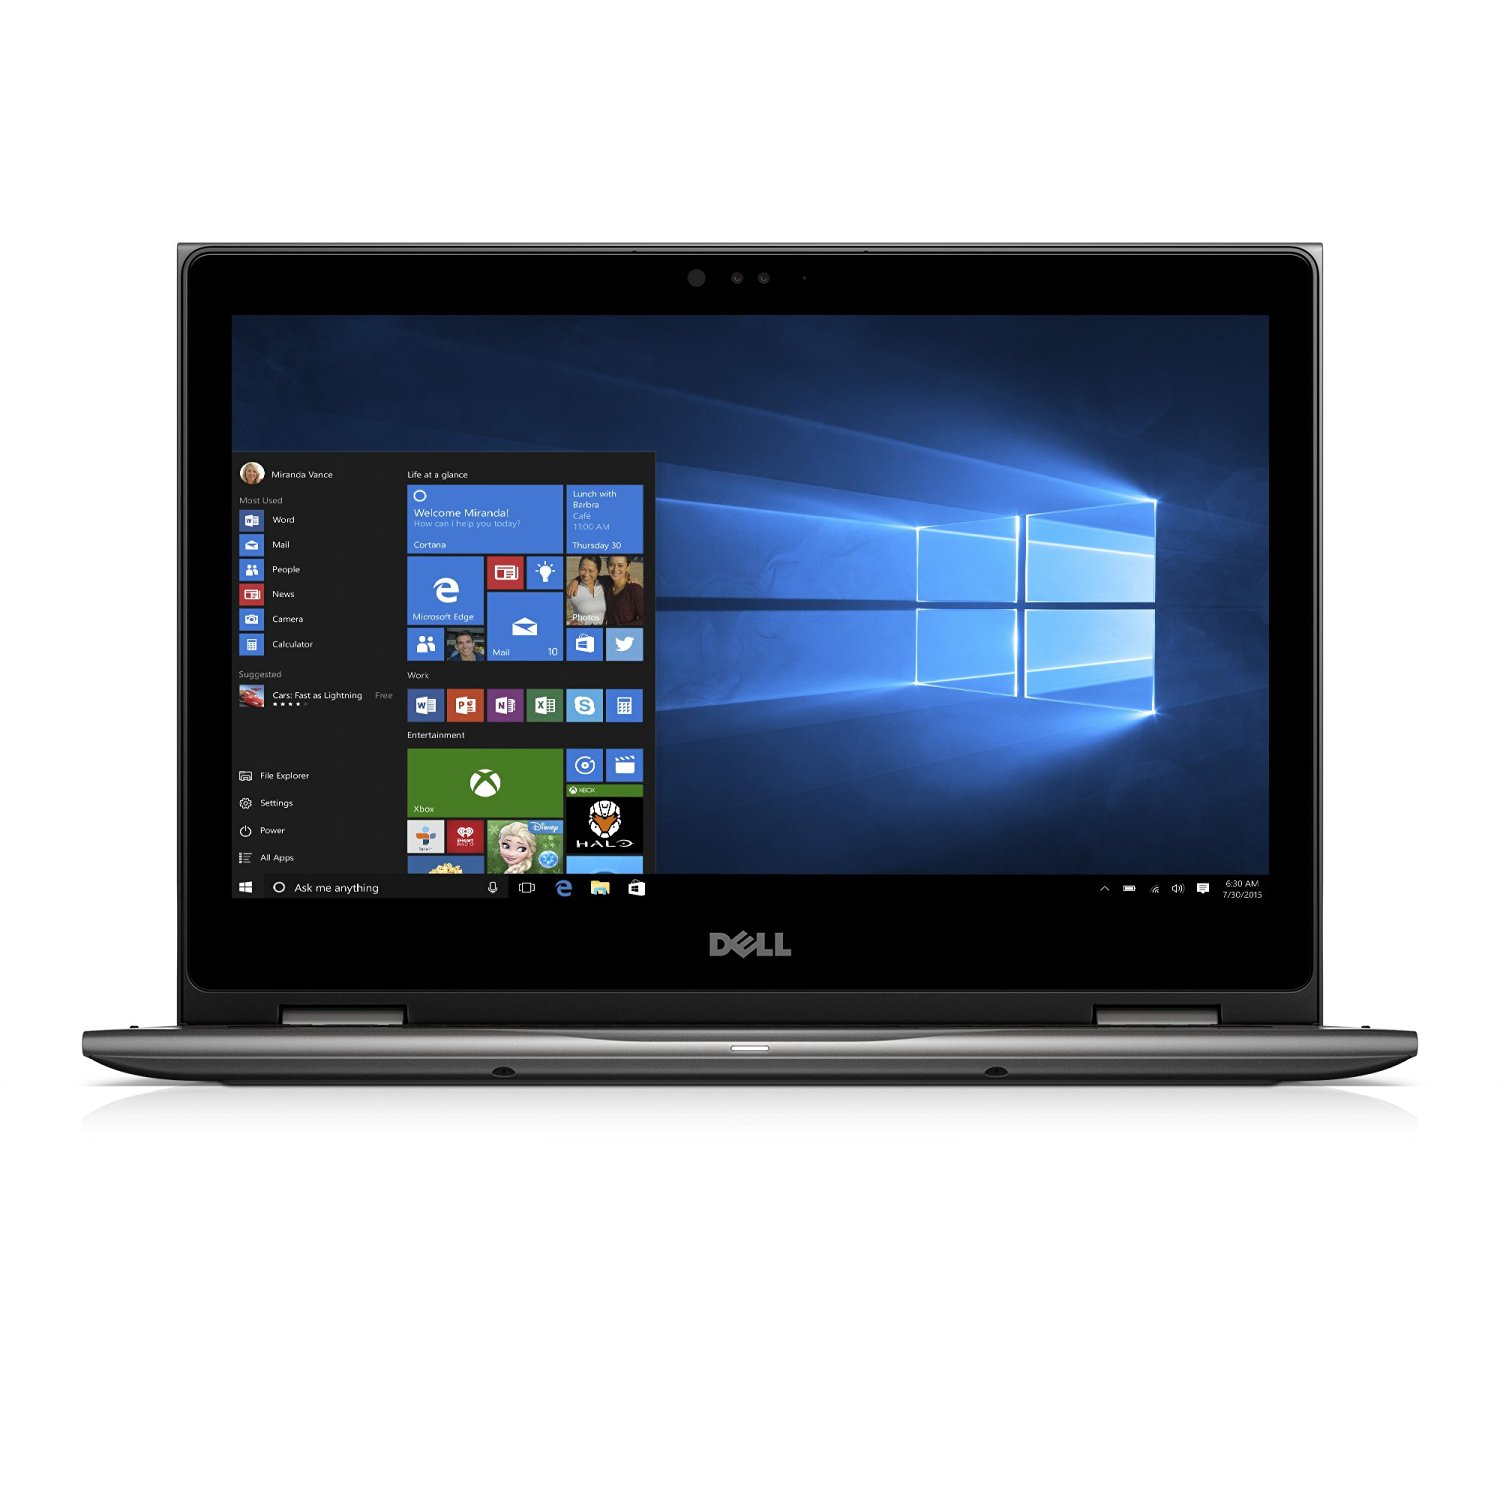 Ultrabook Dell Inspiron 5378 13.3 Full HD Touch Intel Core i3-7100U RAM 4GB HDD 1TB Windows 10 Home Gri